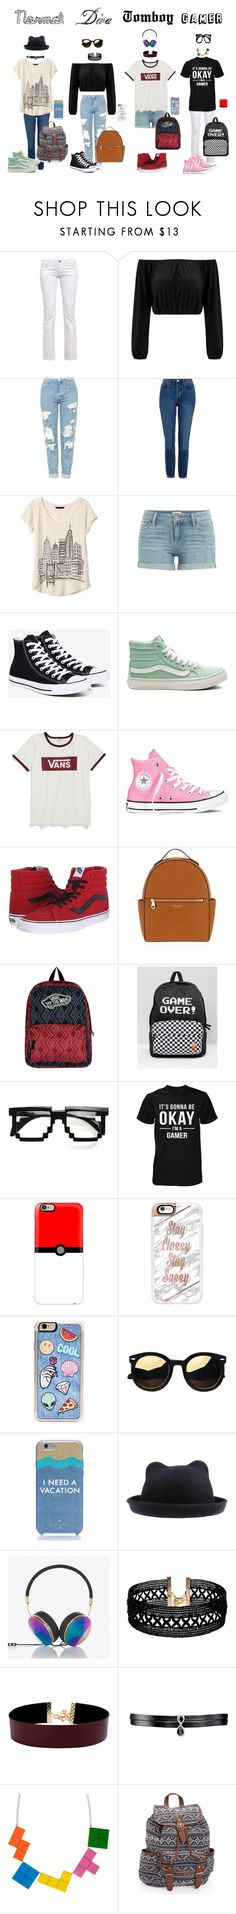 """""""Types Of Girls!"""" by jedezepo on Polyvore featuring Topshop, Banana Republic, Paige Denim, Converse, Vans, Henri Bendel, ZeroUV, Casetify, Zero Gravity and Kate Spade"""